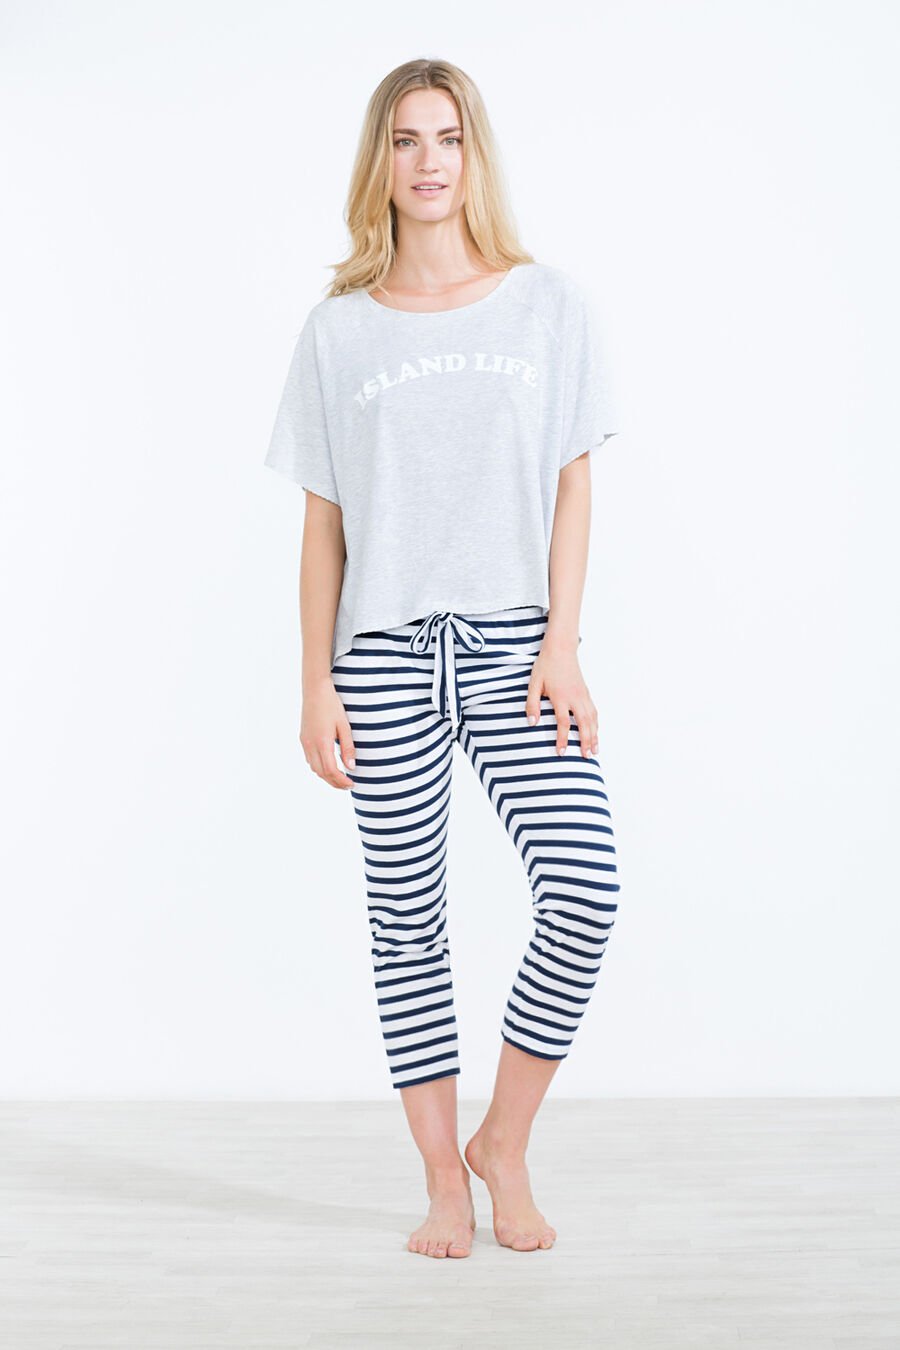 Striped capri pant